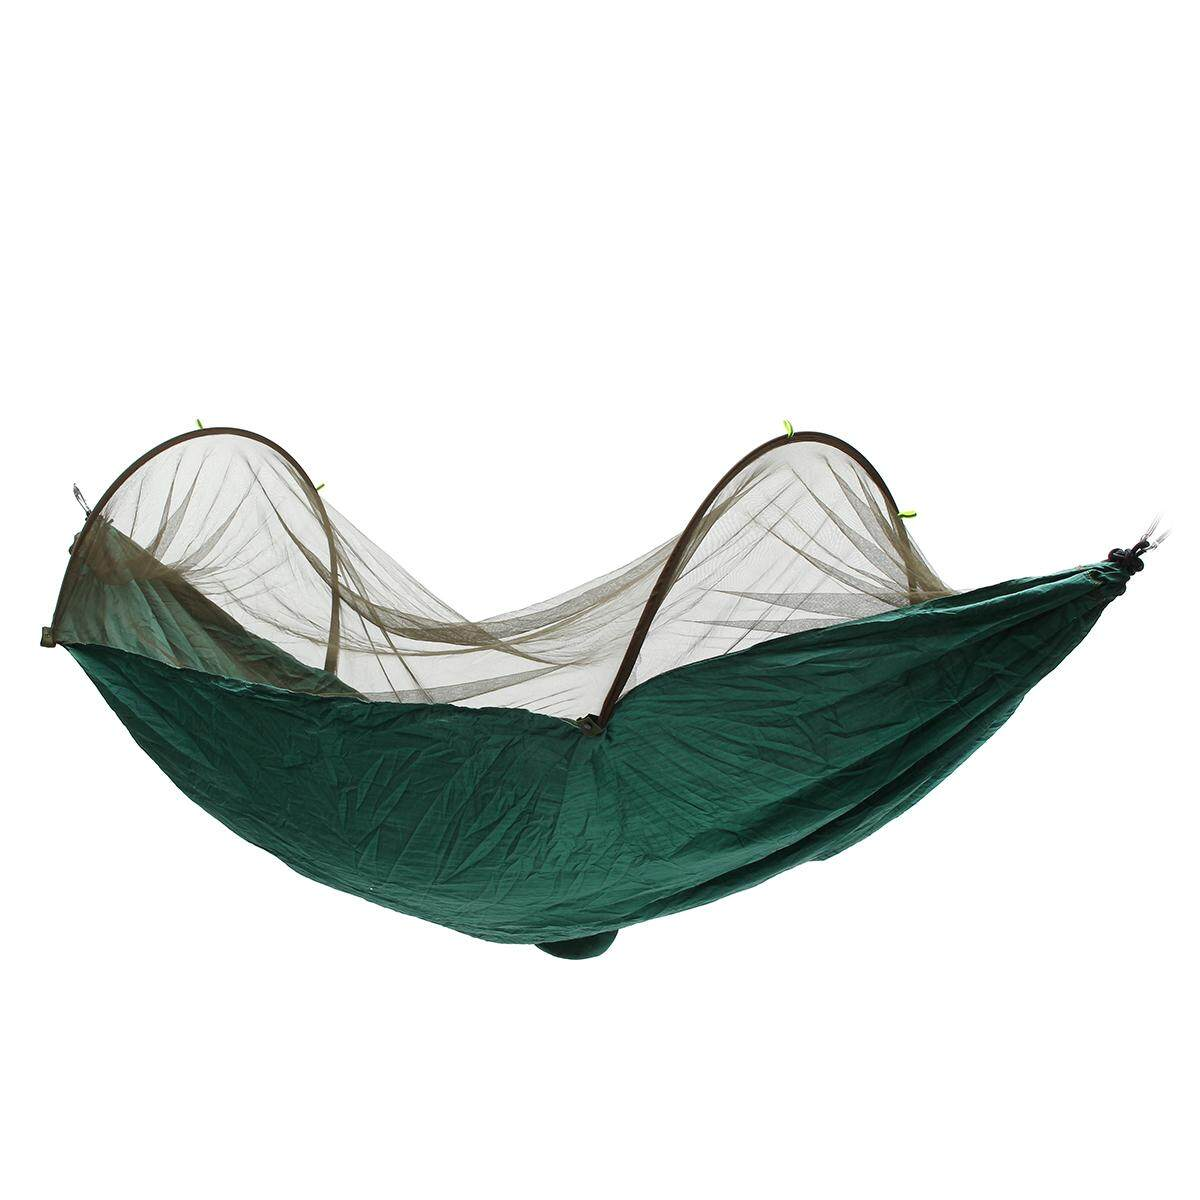 Double Person Travel Outdoor Camping Tent Hanging Hammock Bed & Mosquito Net Blackish Green By Glimmer.